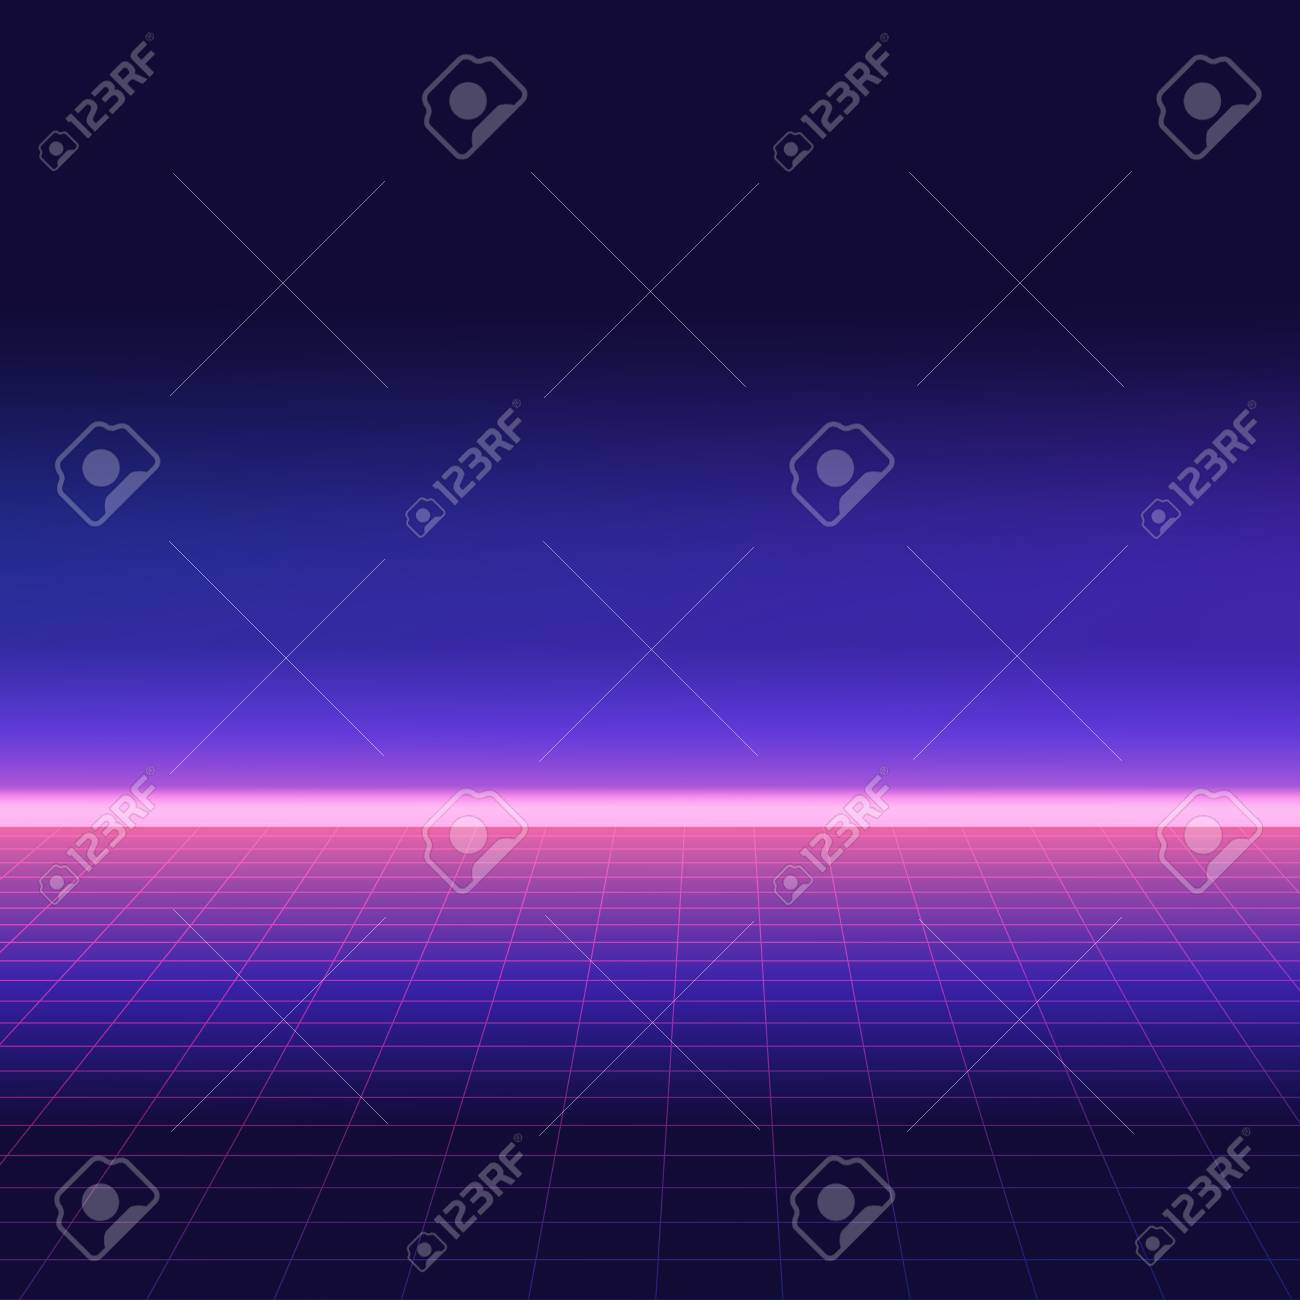 Abstract retro background, 80s style. Futuristic digital landscape, neon party flyer. Vector illustration. - 122506368